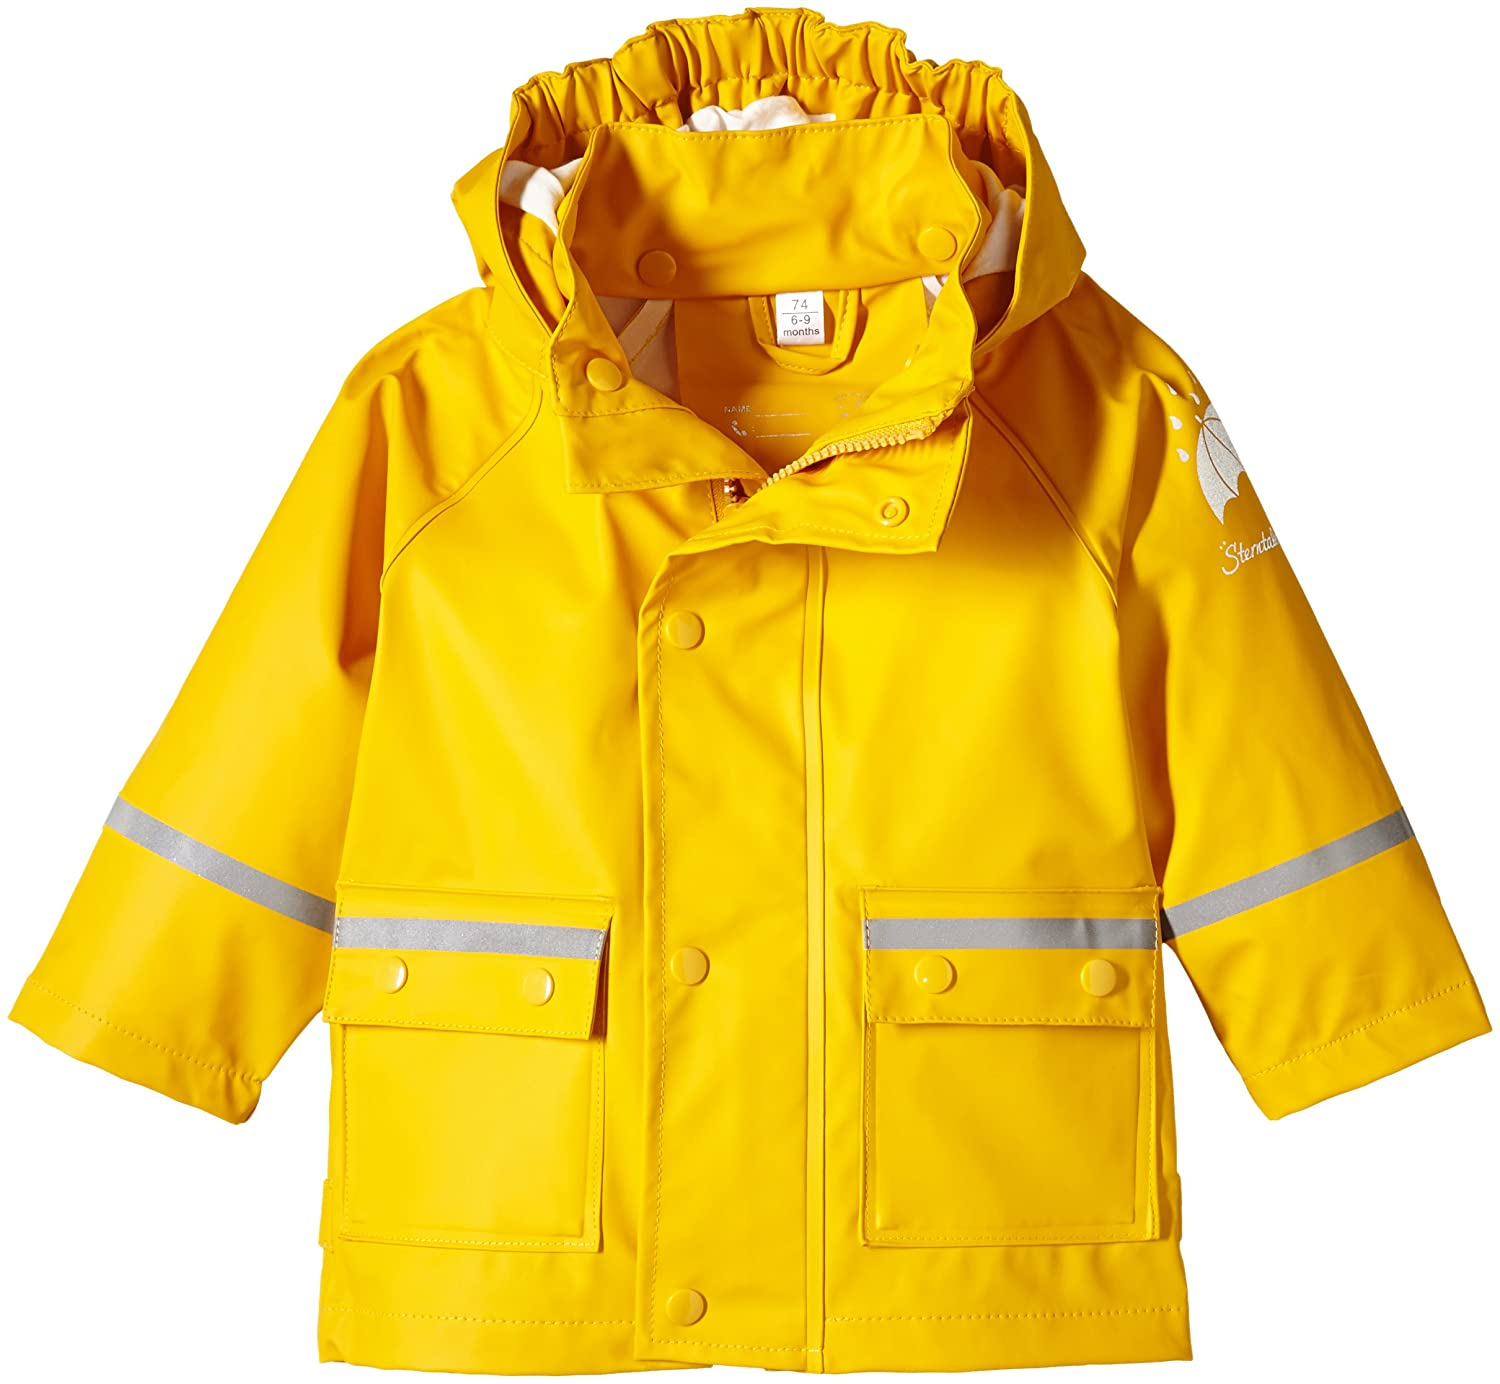 Sterntaler Baby Boys Regenjacke Ungefüttert Long Sleeve Raincoat Sterntaler GmbH (Apparel NEW) 5651405